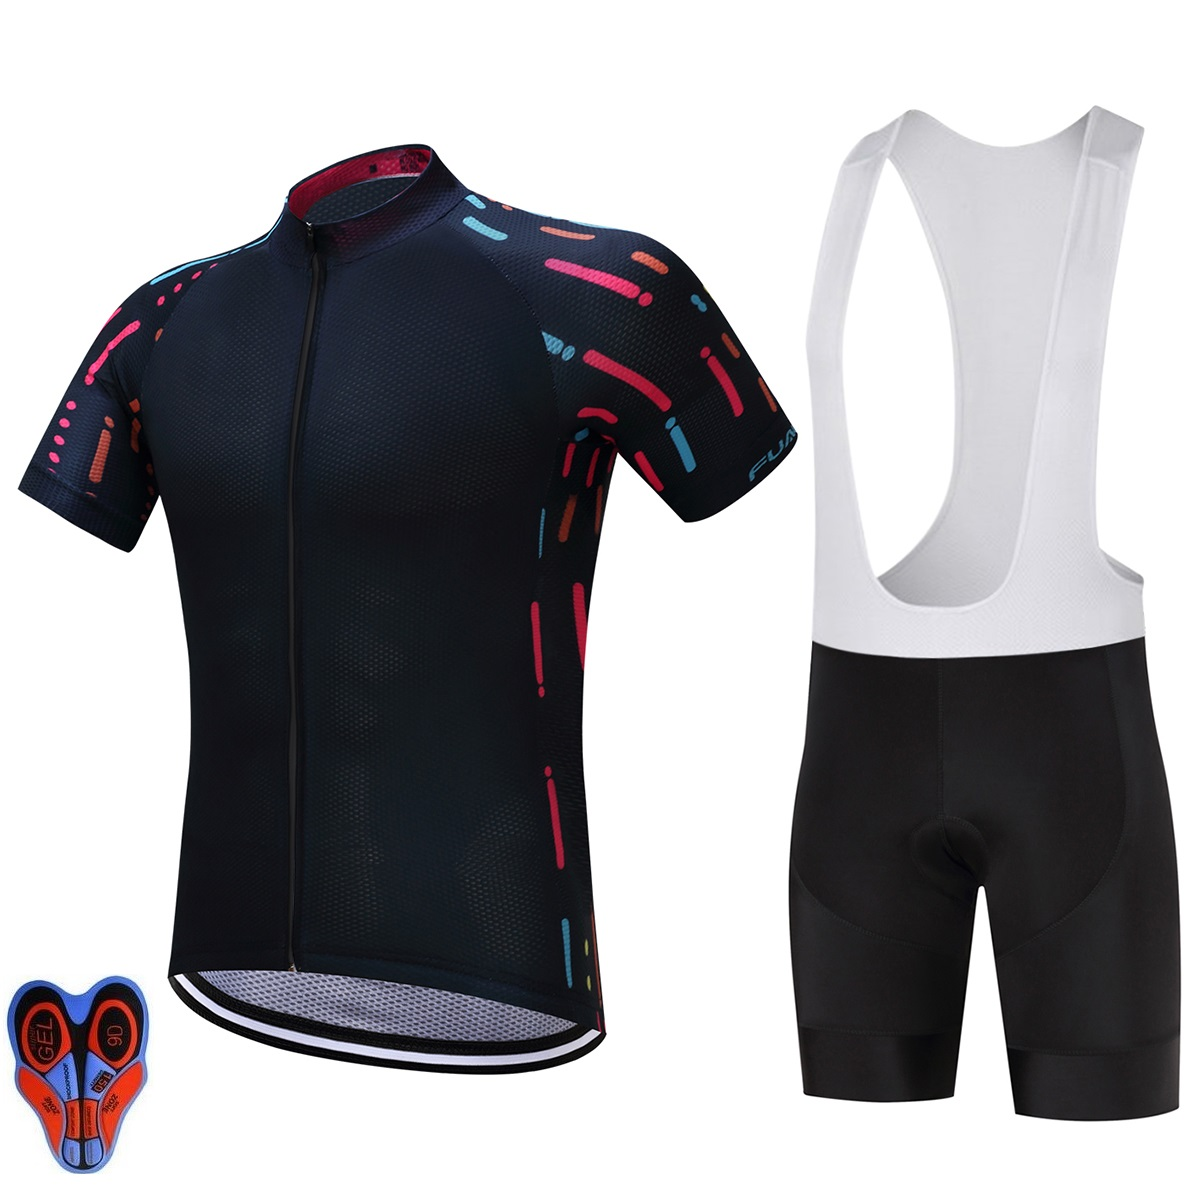 2017 NEW MTB bora cycling Jerseys bike maillot ciclismo cycling clothing quick dry men's summer bicycle clothes sportwear 9D gel cycling clothing rushed mtb mavic 2017 bike jerseys men for graffiti cycling polyester breathable bicycle new multicolor s 6xl